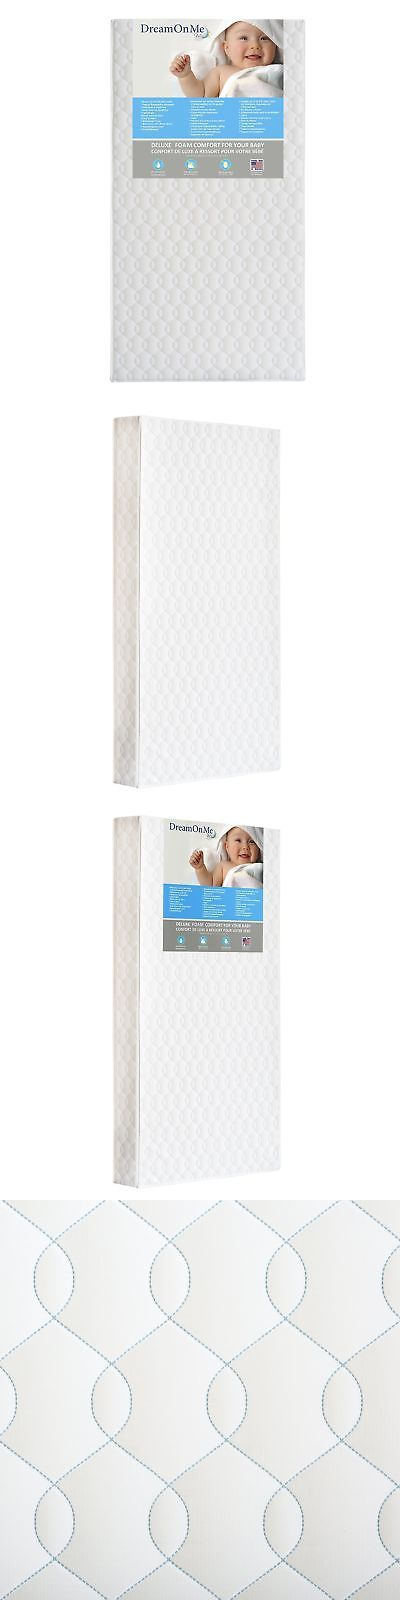 Mattress Pads and Covers 162041: Dream On Me Full Size Firm Foam Crib And Toddler Bed Mattress, Carousel, 6 -> BUY IT NOW ONLY: $54.28 on eBay!